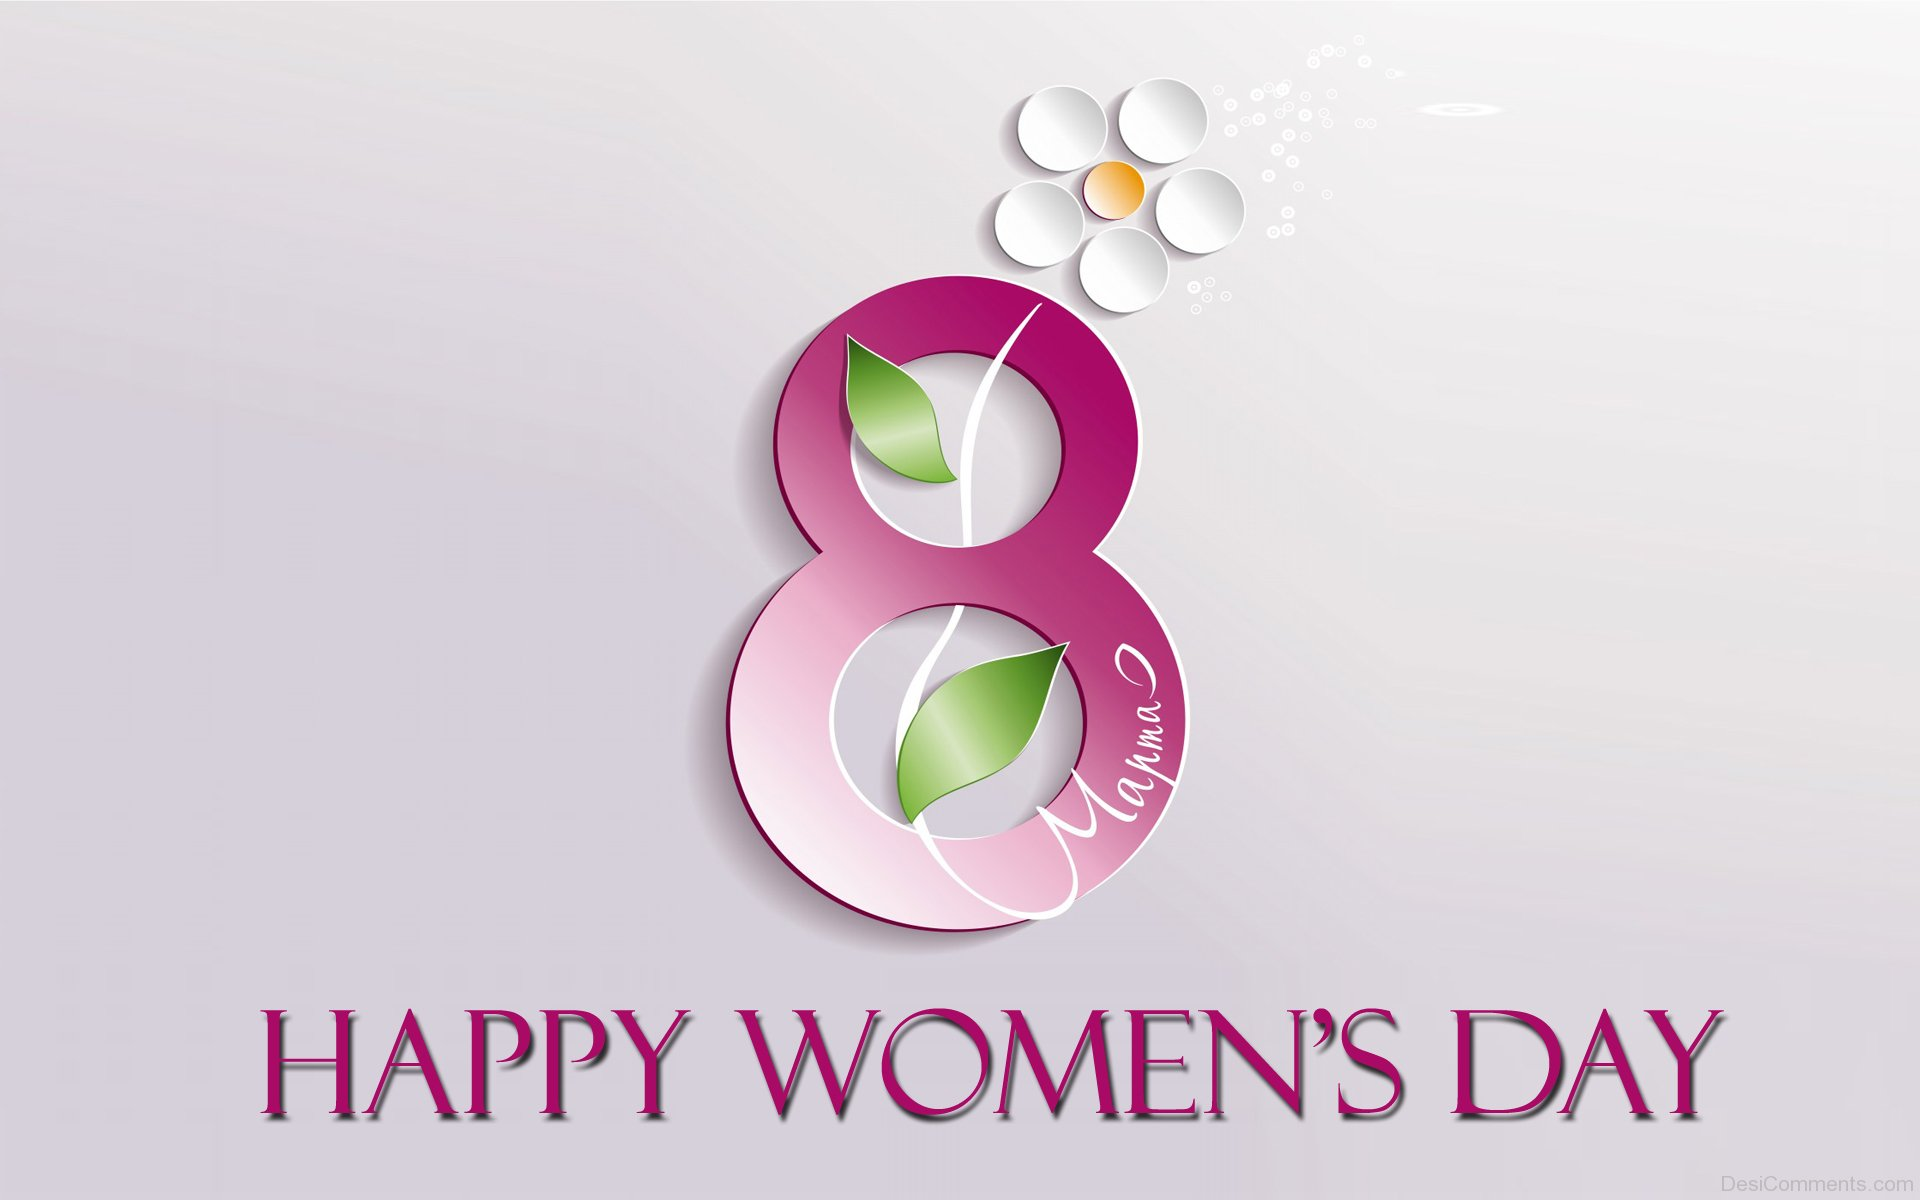 Women's Day HD Image